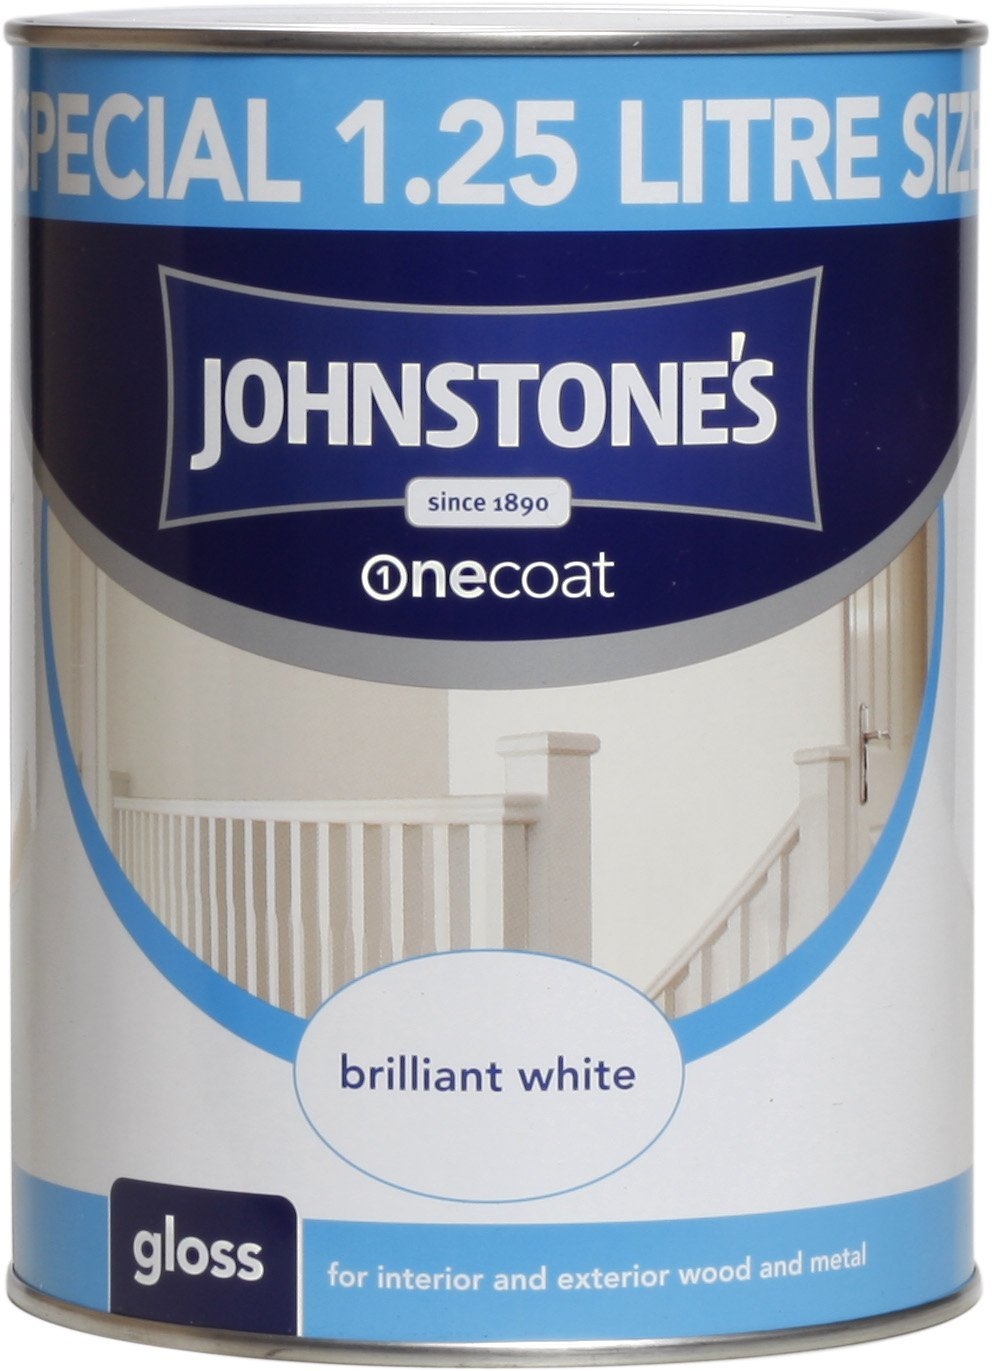 johnstone's one coat